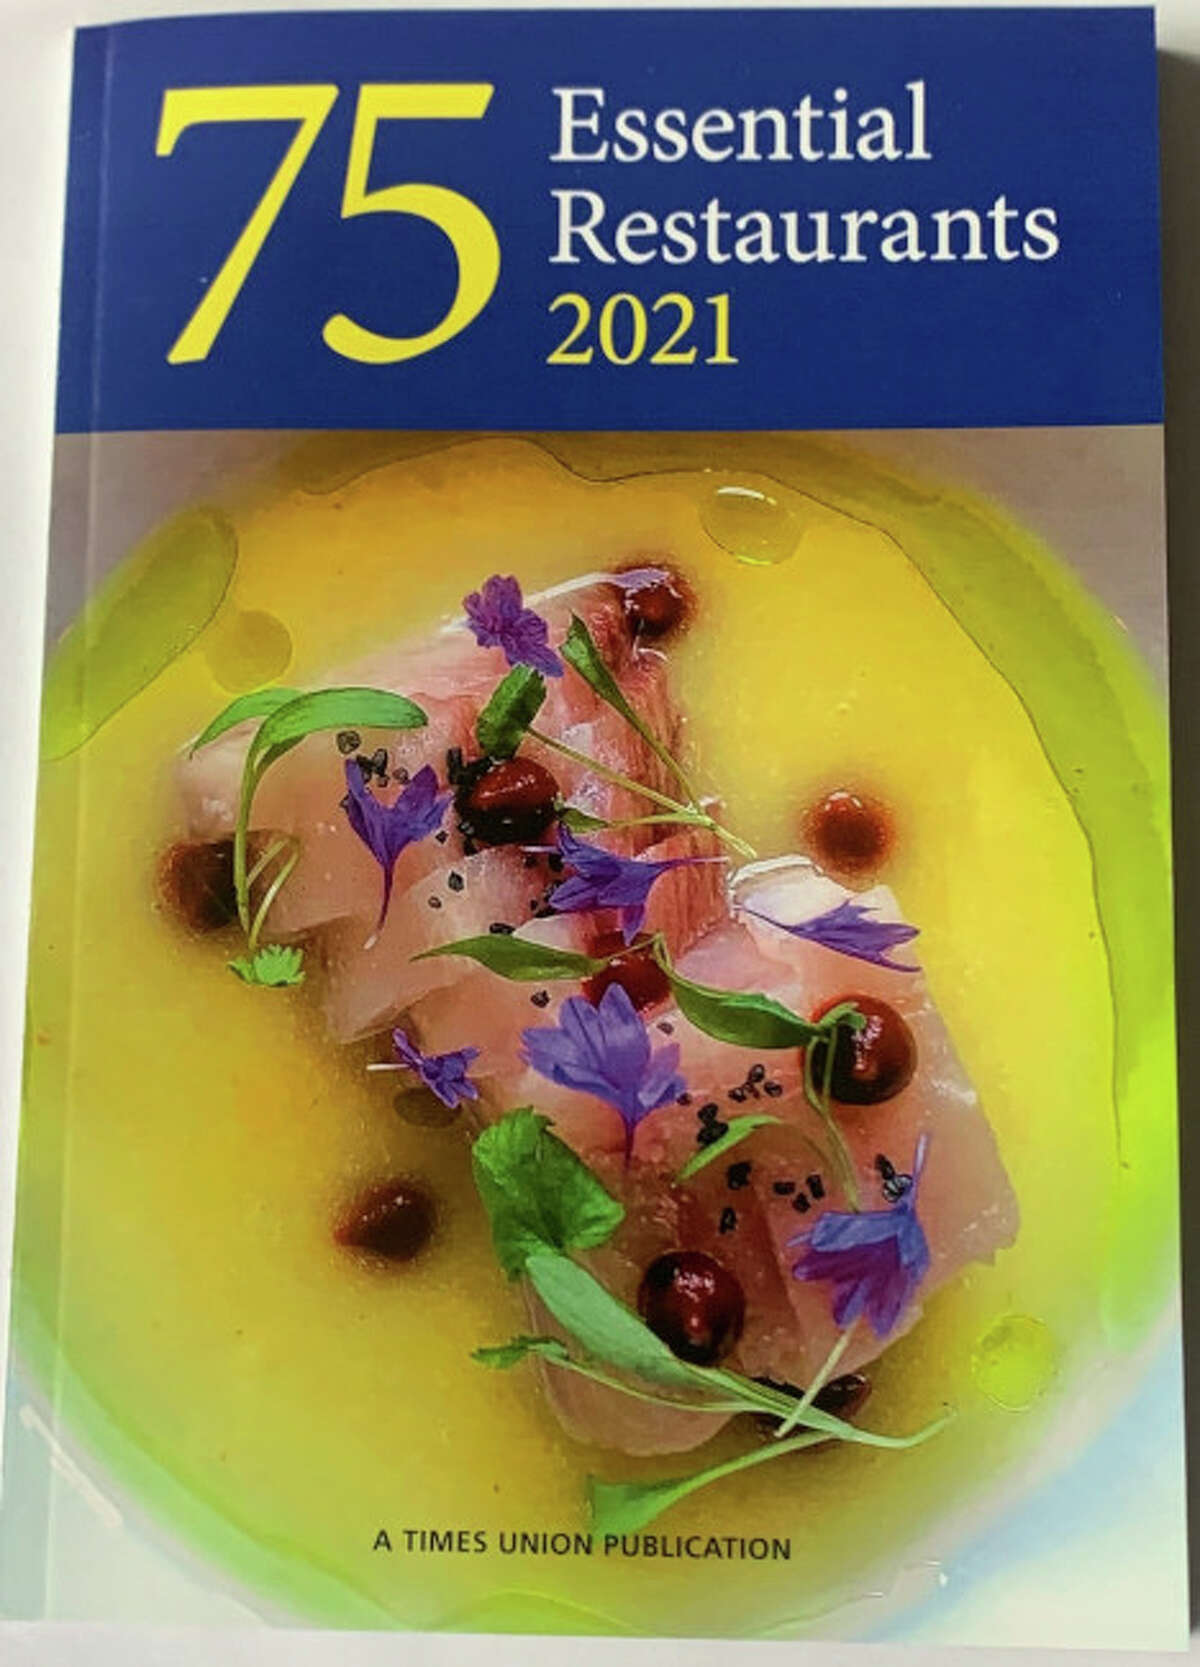 The Times Union's 75 Essential Restaurants guide for 2021 may be purchased for $4 for delivery by mail via timesunion.com/store.